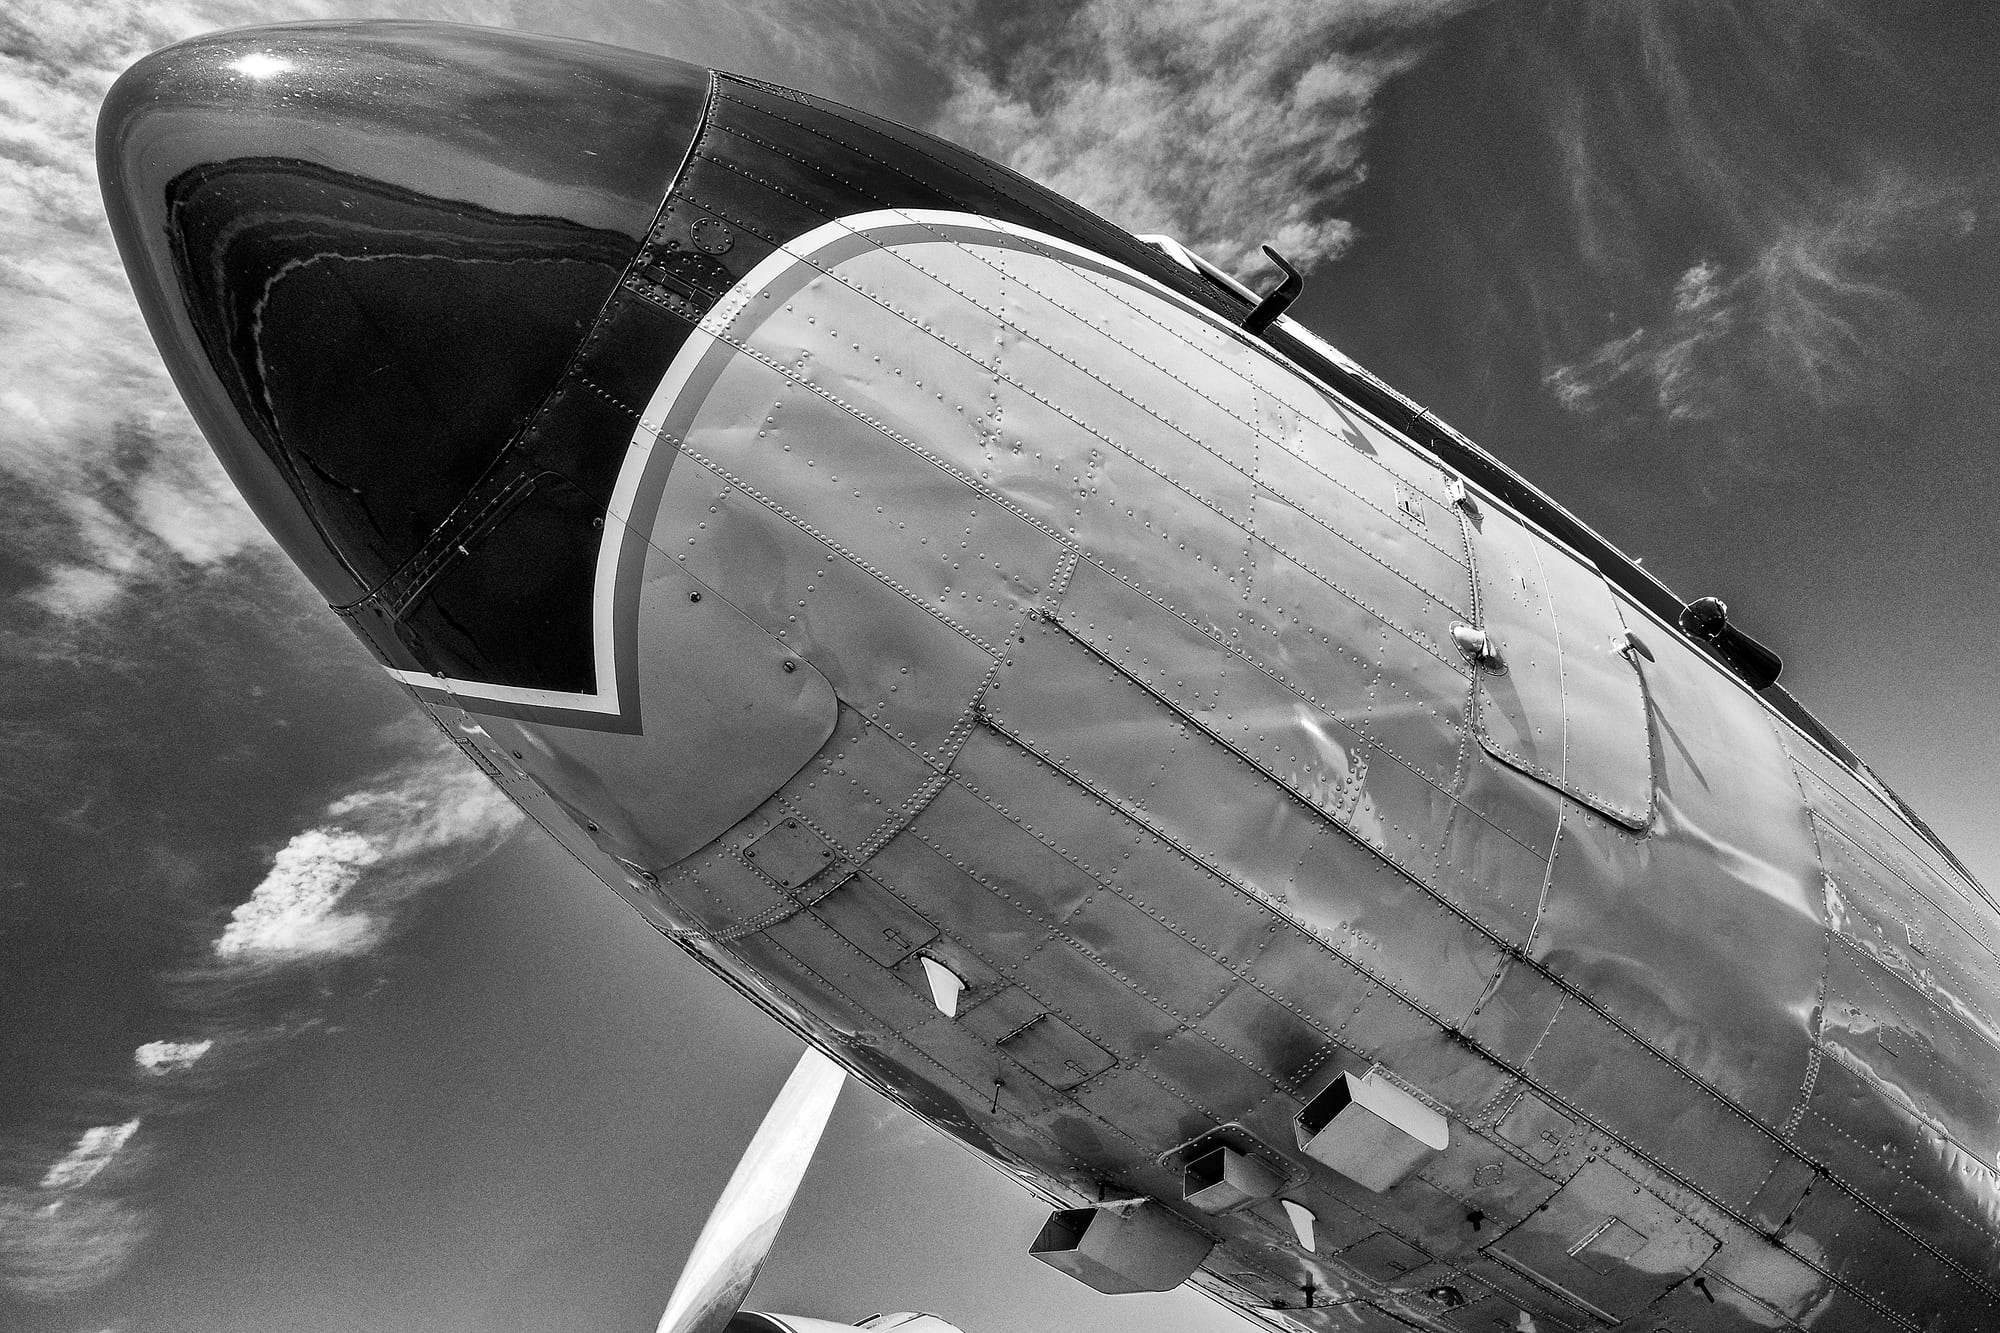 Breitling DC-3 fuselage Dispatches: Breitling's DC-3 To Become Oldest Aircraft Ever To Circle The Earth Dispatches: Breitling's DC-3 To Become Oldest Aircraft Ever To Circle The Earth P8212270 bw